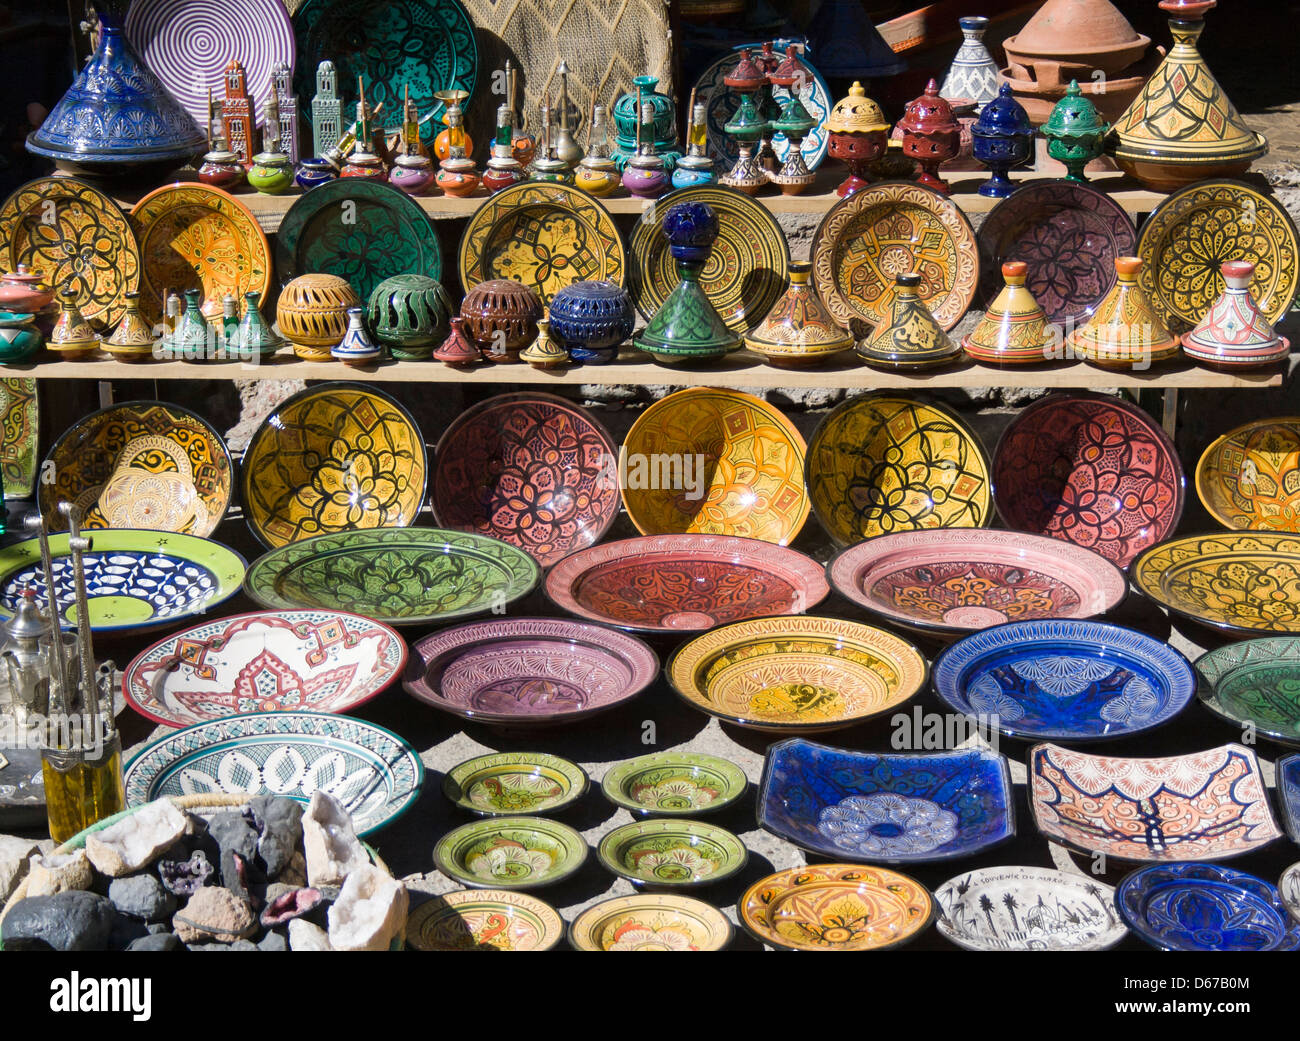 Ourika Valley, Morocco. Souvenir shop selling ceramic plates and tagines. - Stock Image